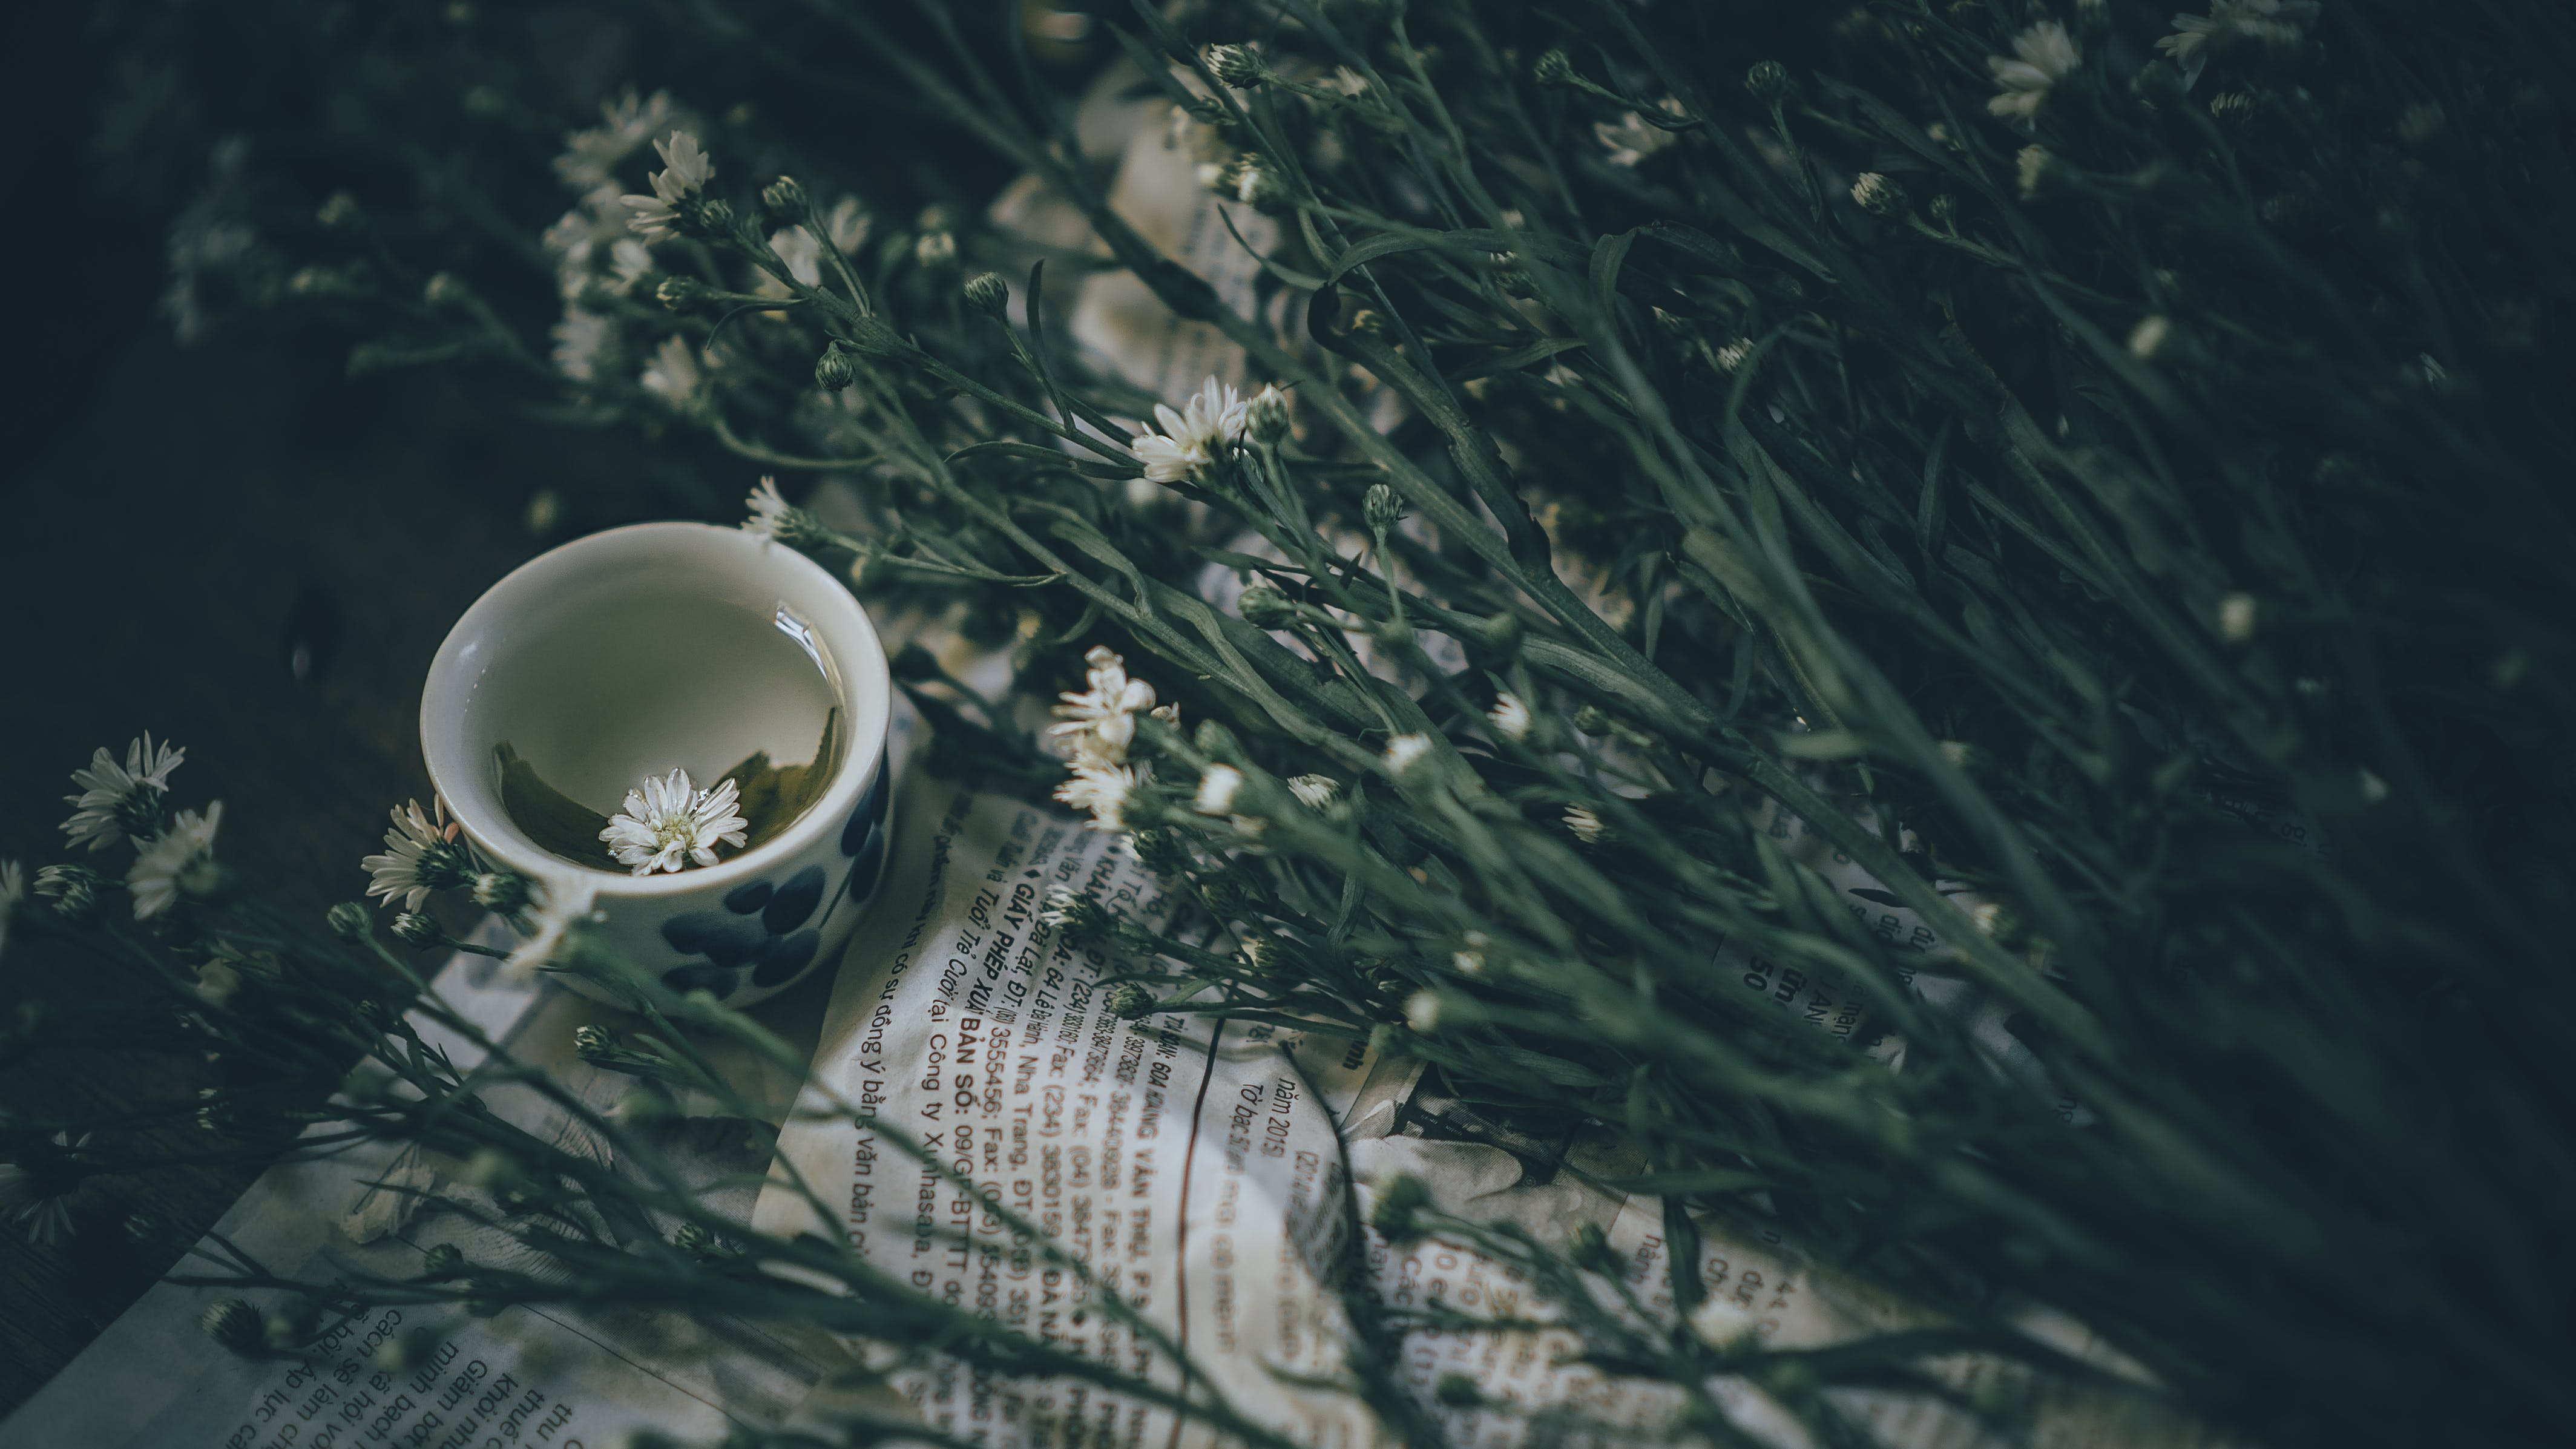 Ceramic Teacup Near White Flowers With Plant